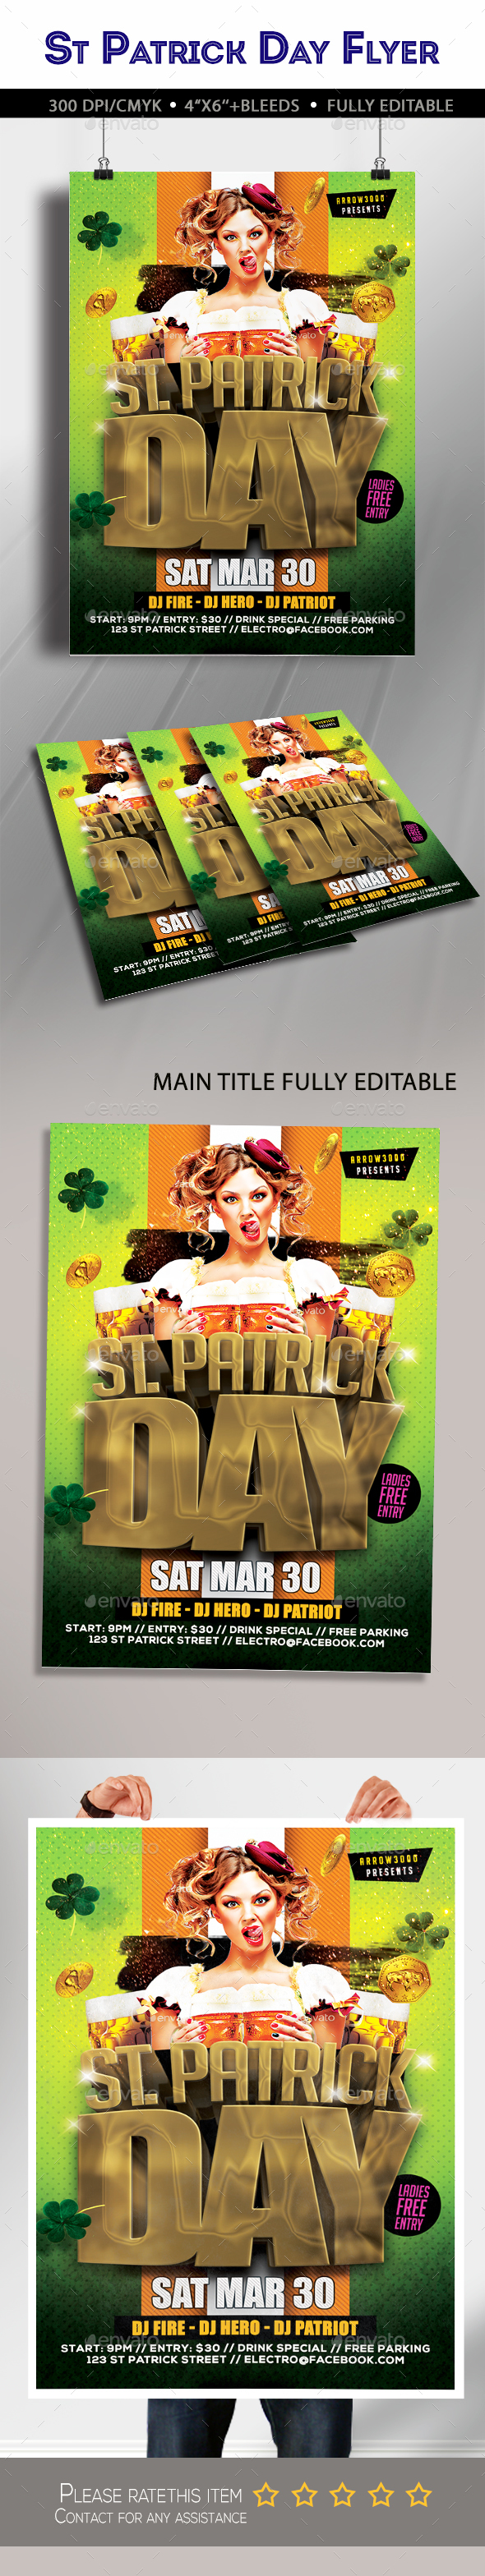 St Patricks Day Flyer - Clubs & Parties Events